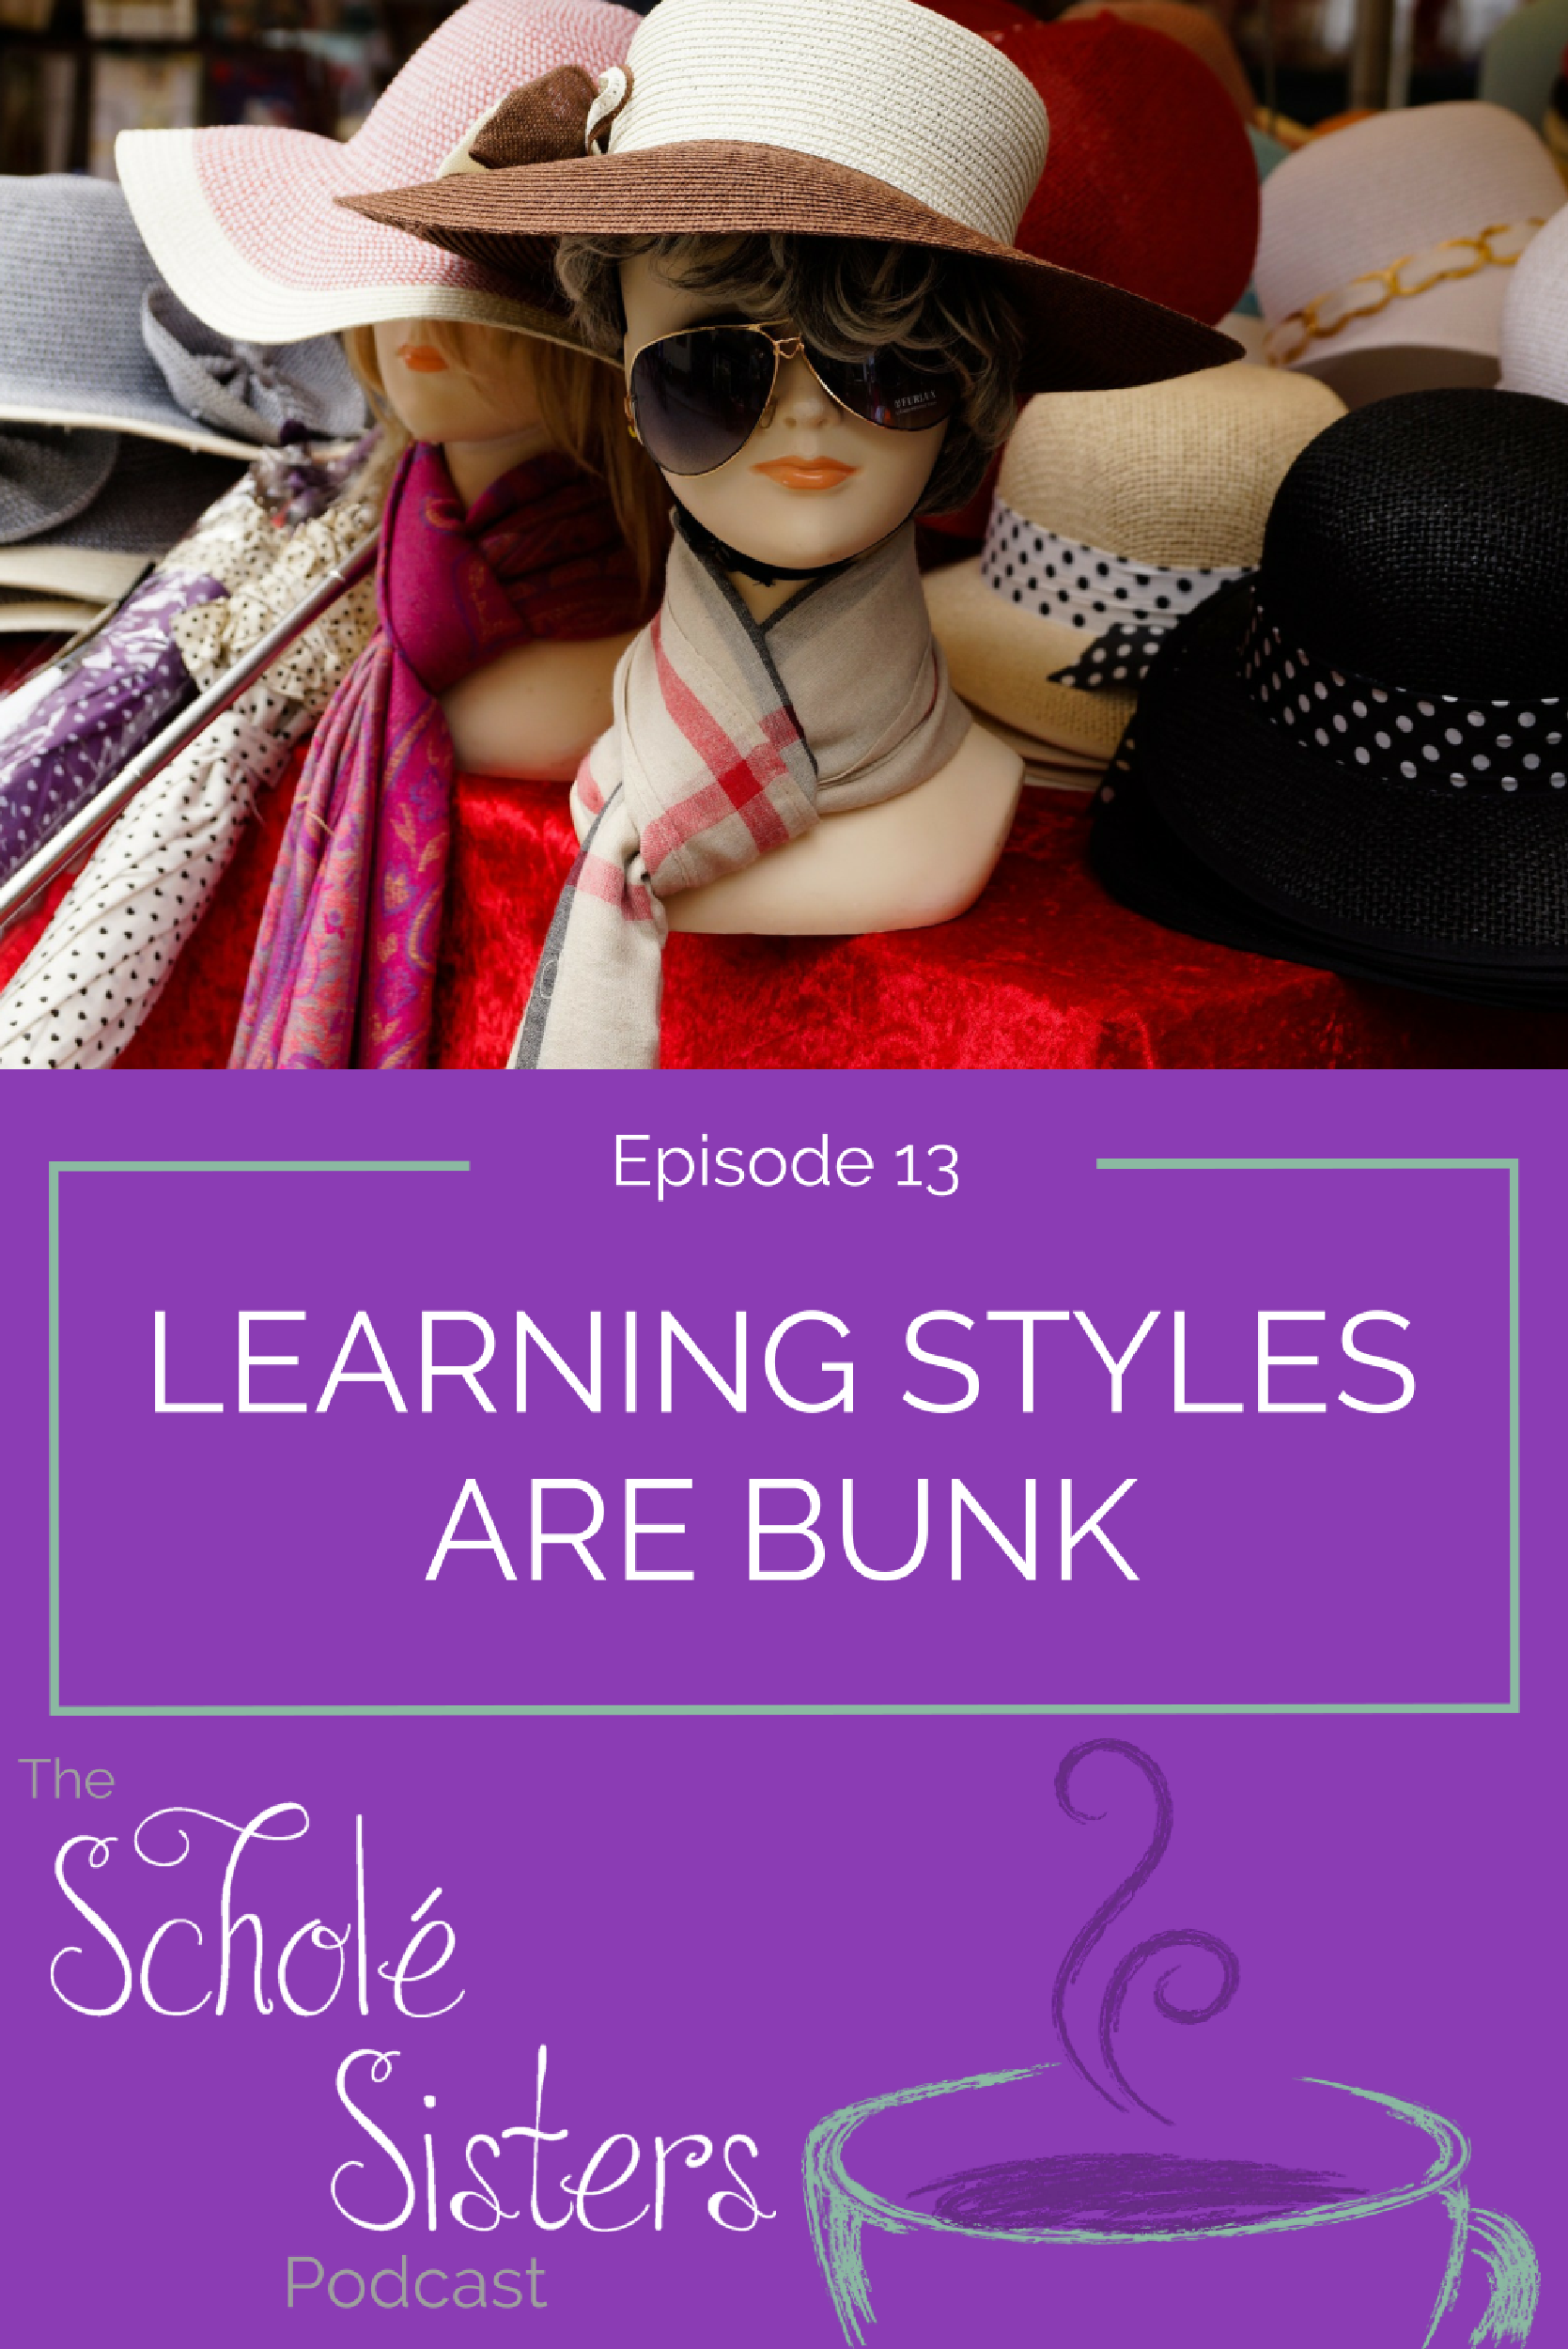 Pam and Brandy discuss learning styles and that there is no scientific evidence whatsoever to back them up. (Pam is trying to get us into trouble.)